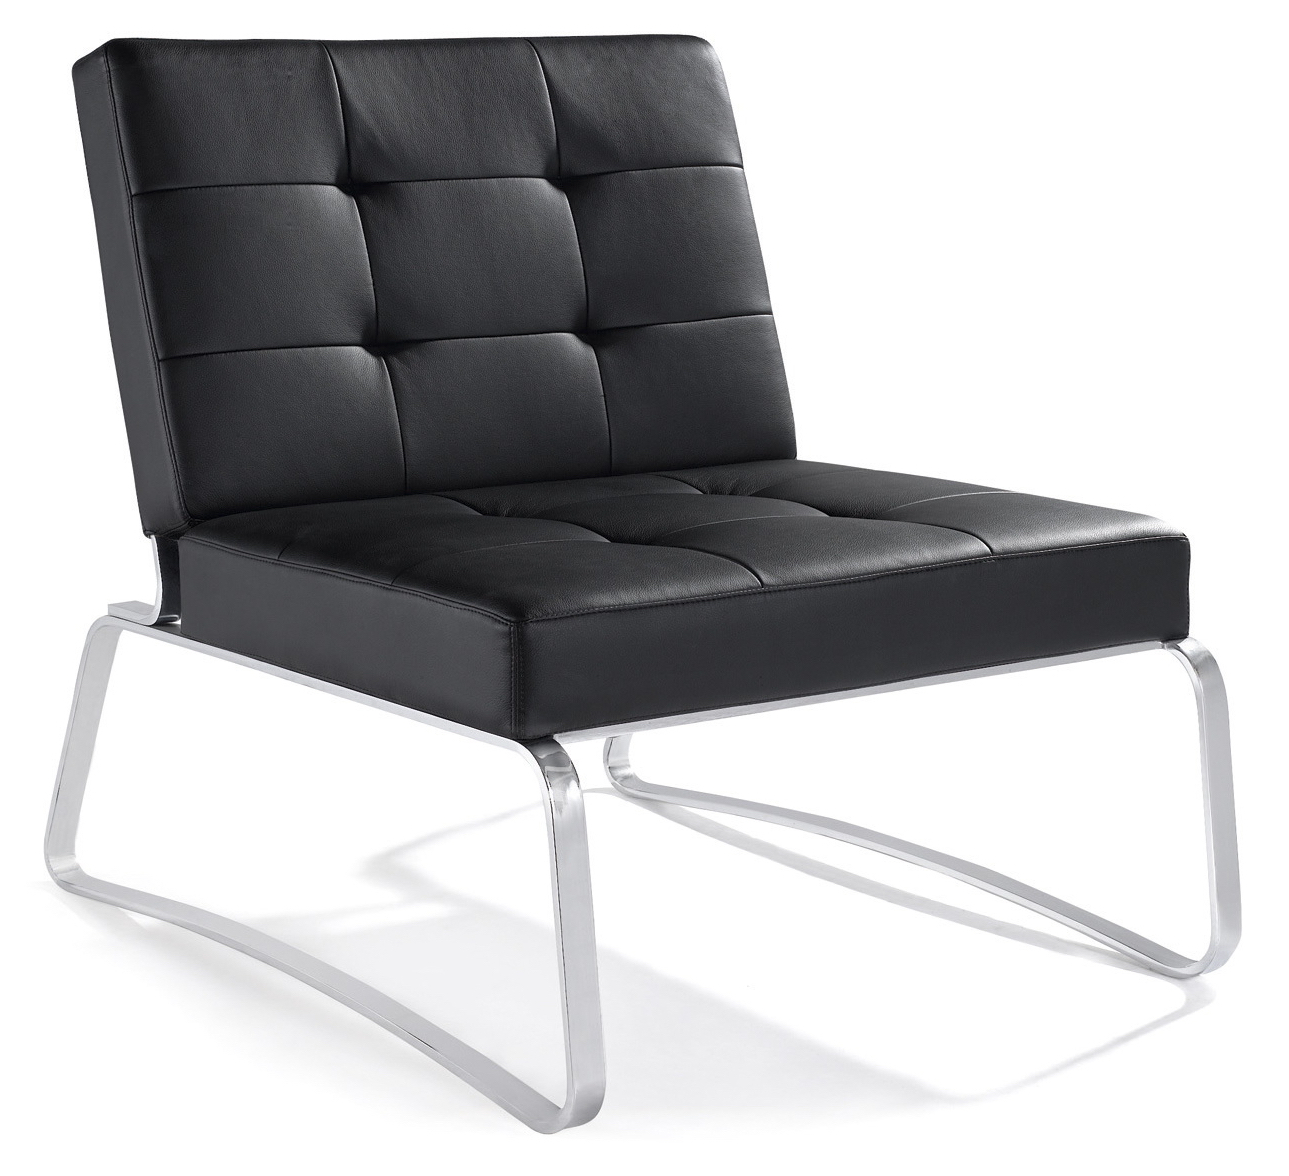 hermes-lounge-chair-black.jpg